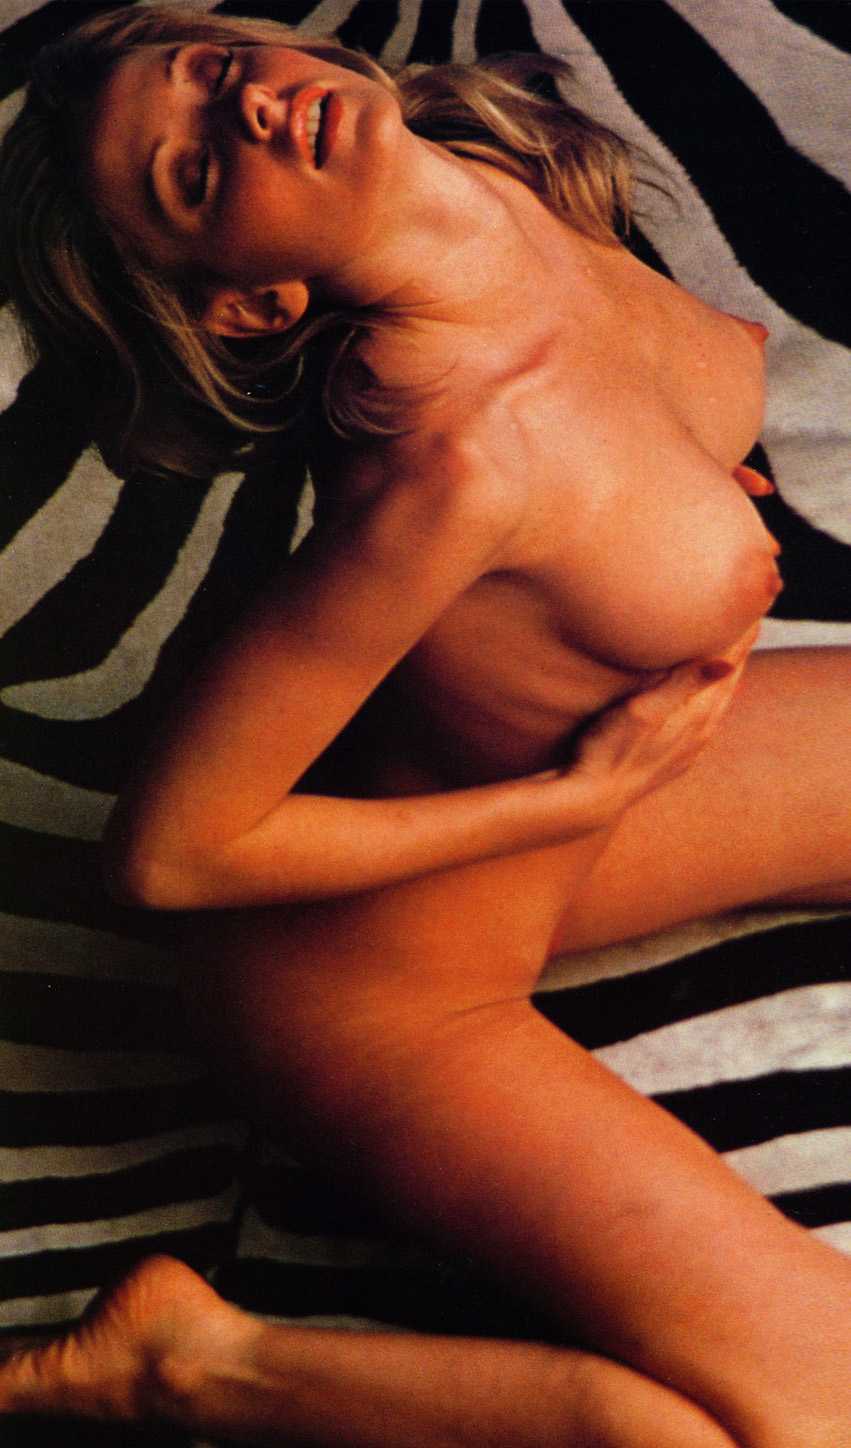 Cyndi Wood Playboy Playmate Of The Year 1974 10 .jpg